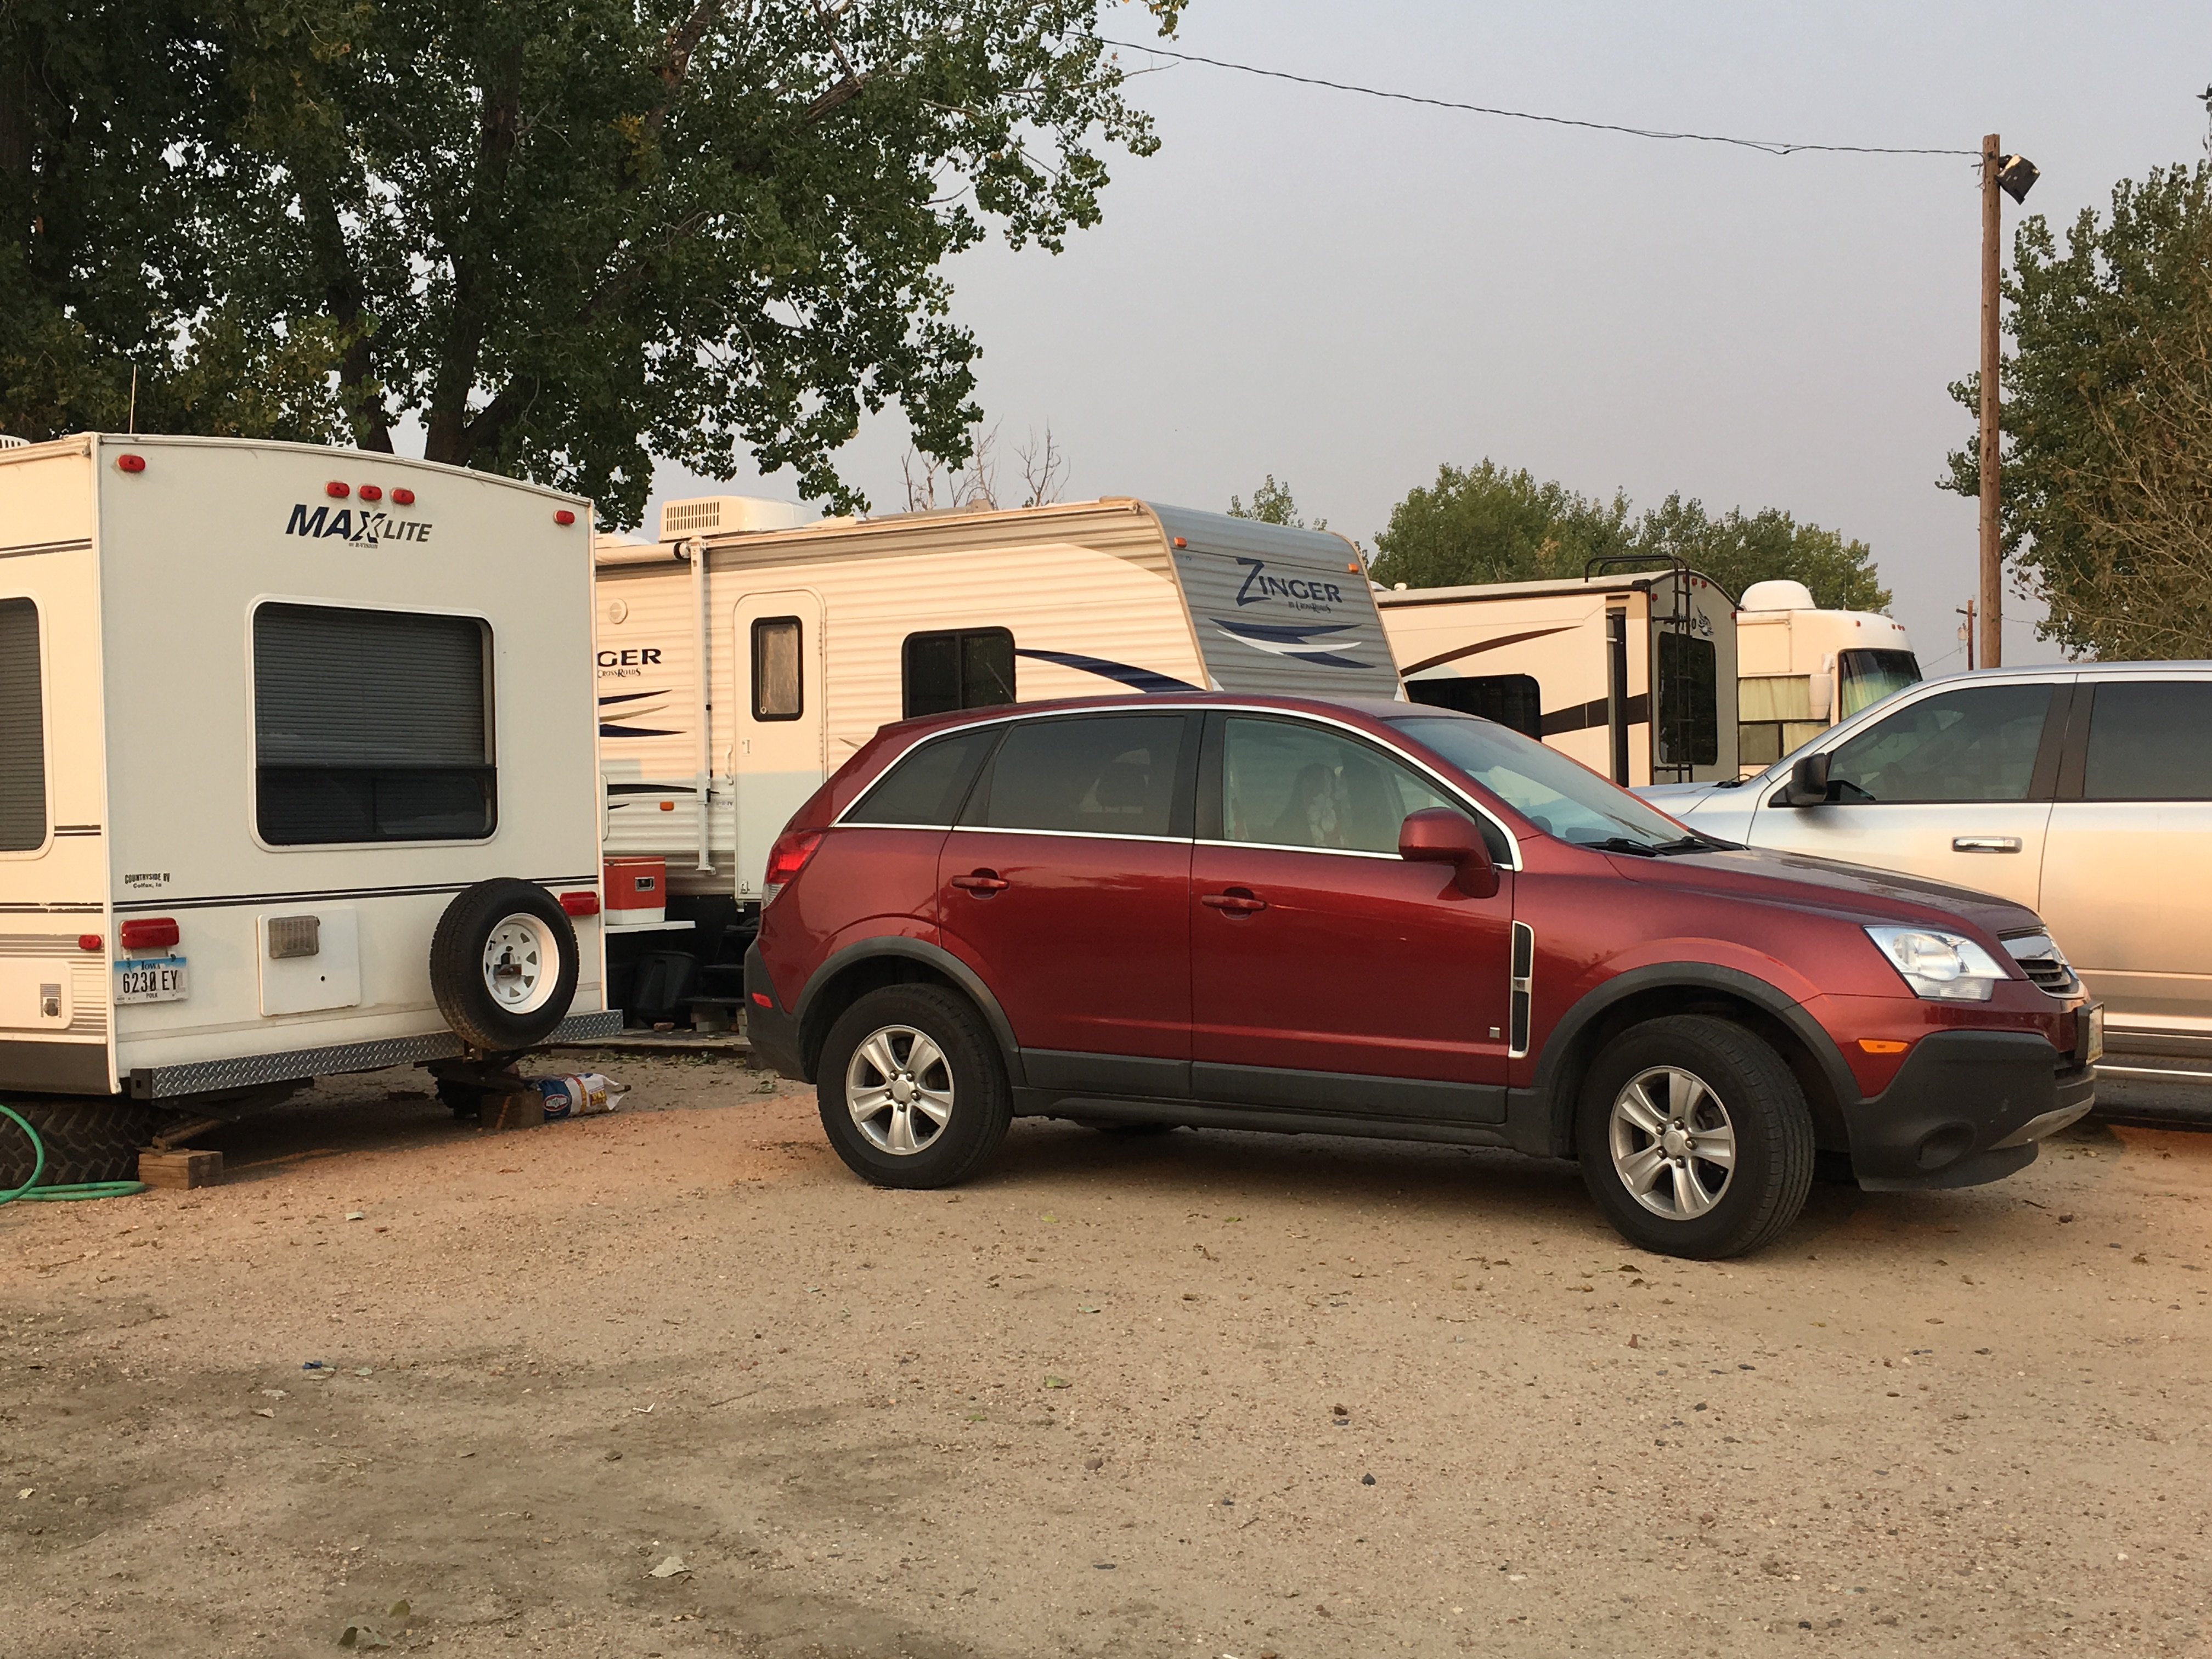 Silver Spur Campground image 7